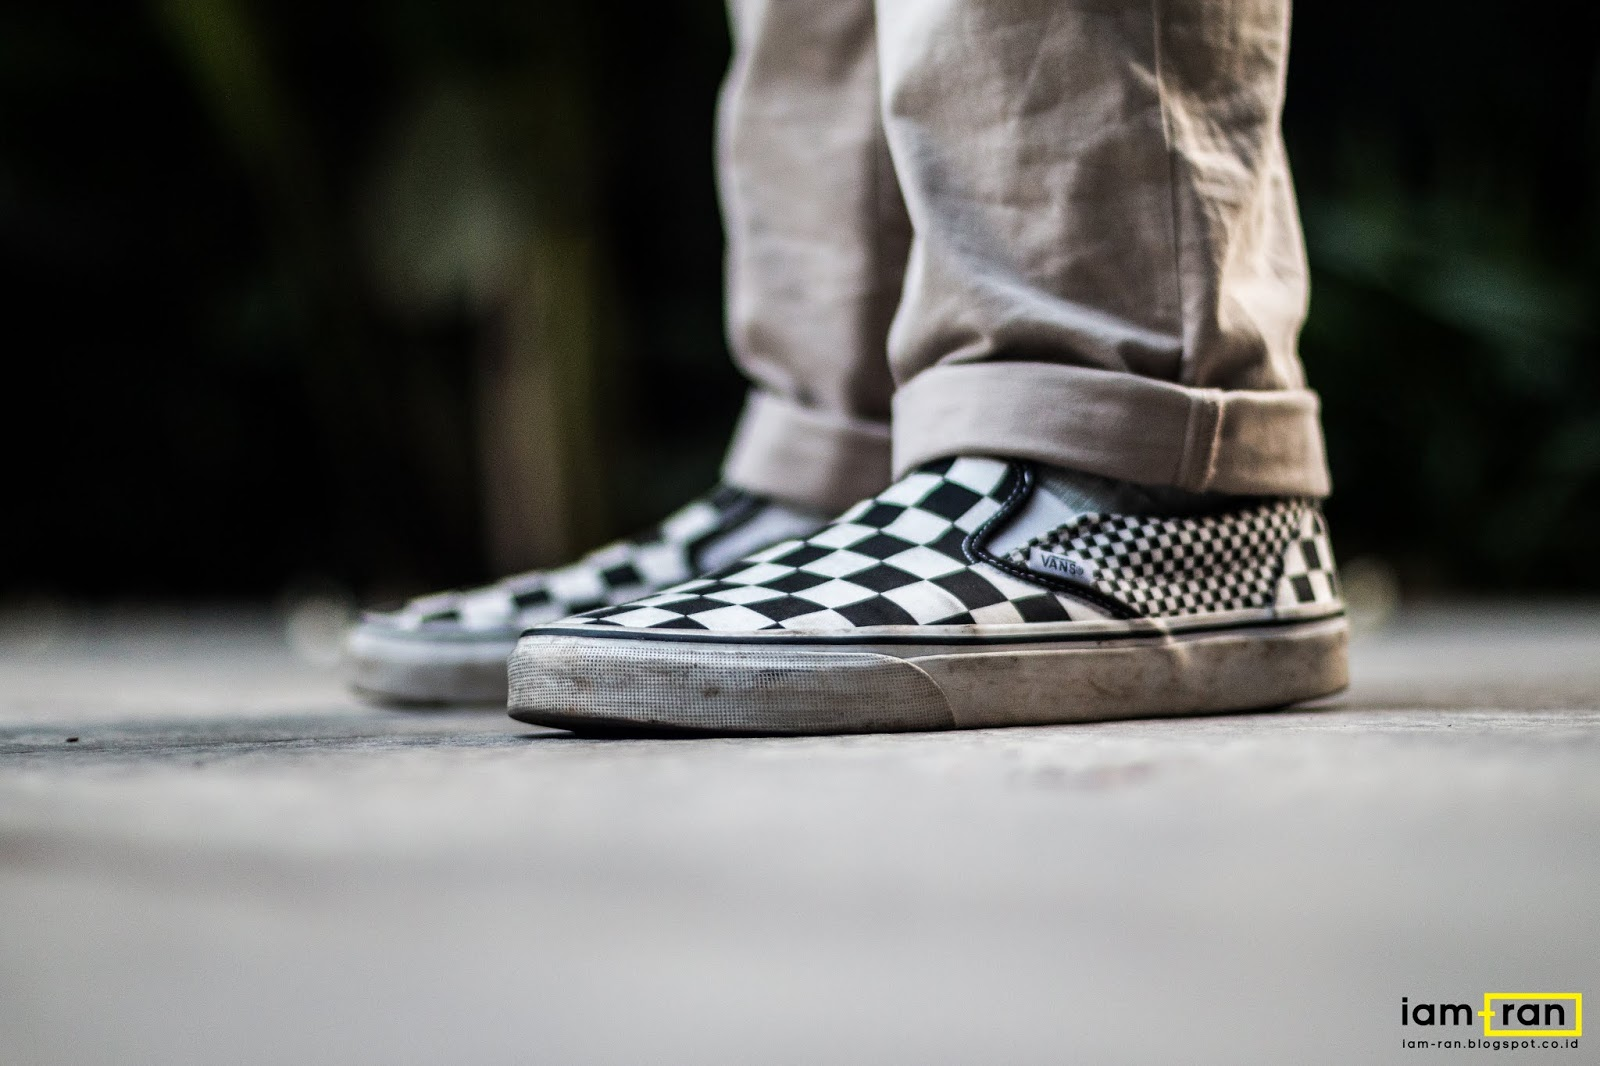 c6a36d37b5d587 IAM-RAN  ON FEET   Arfan Okky - Vans Classic Slip on Mix Checkerboard